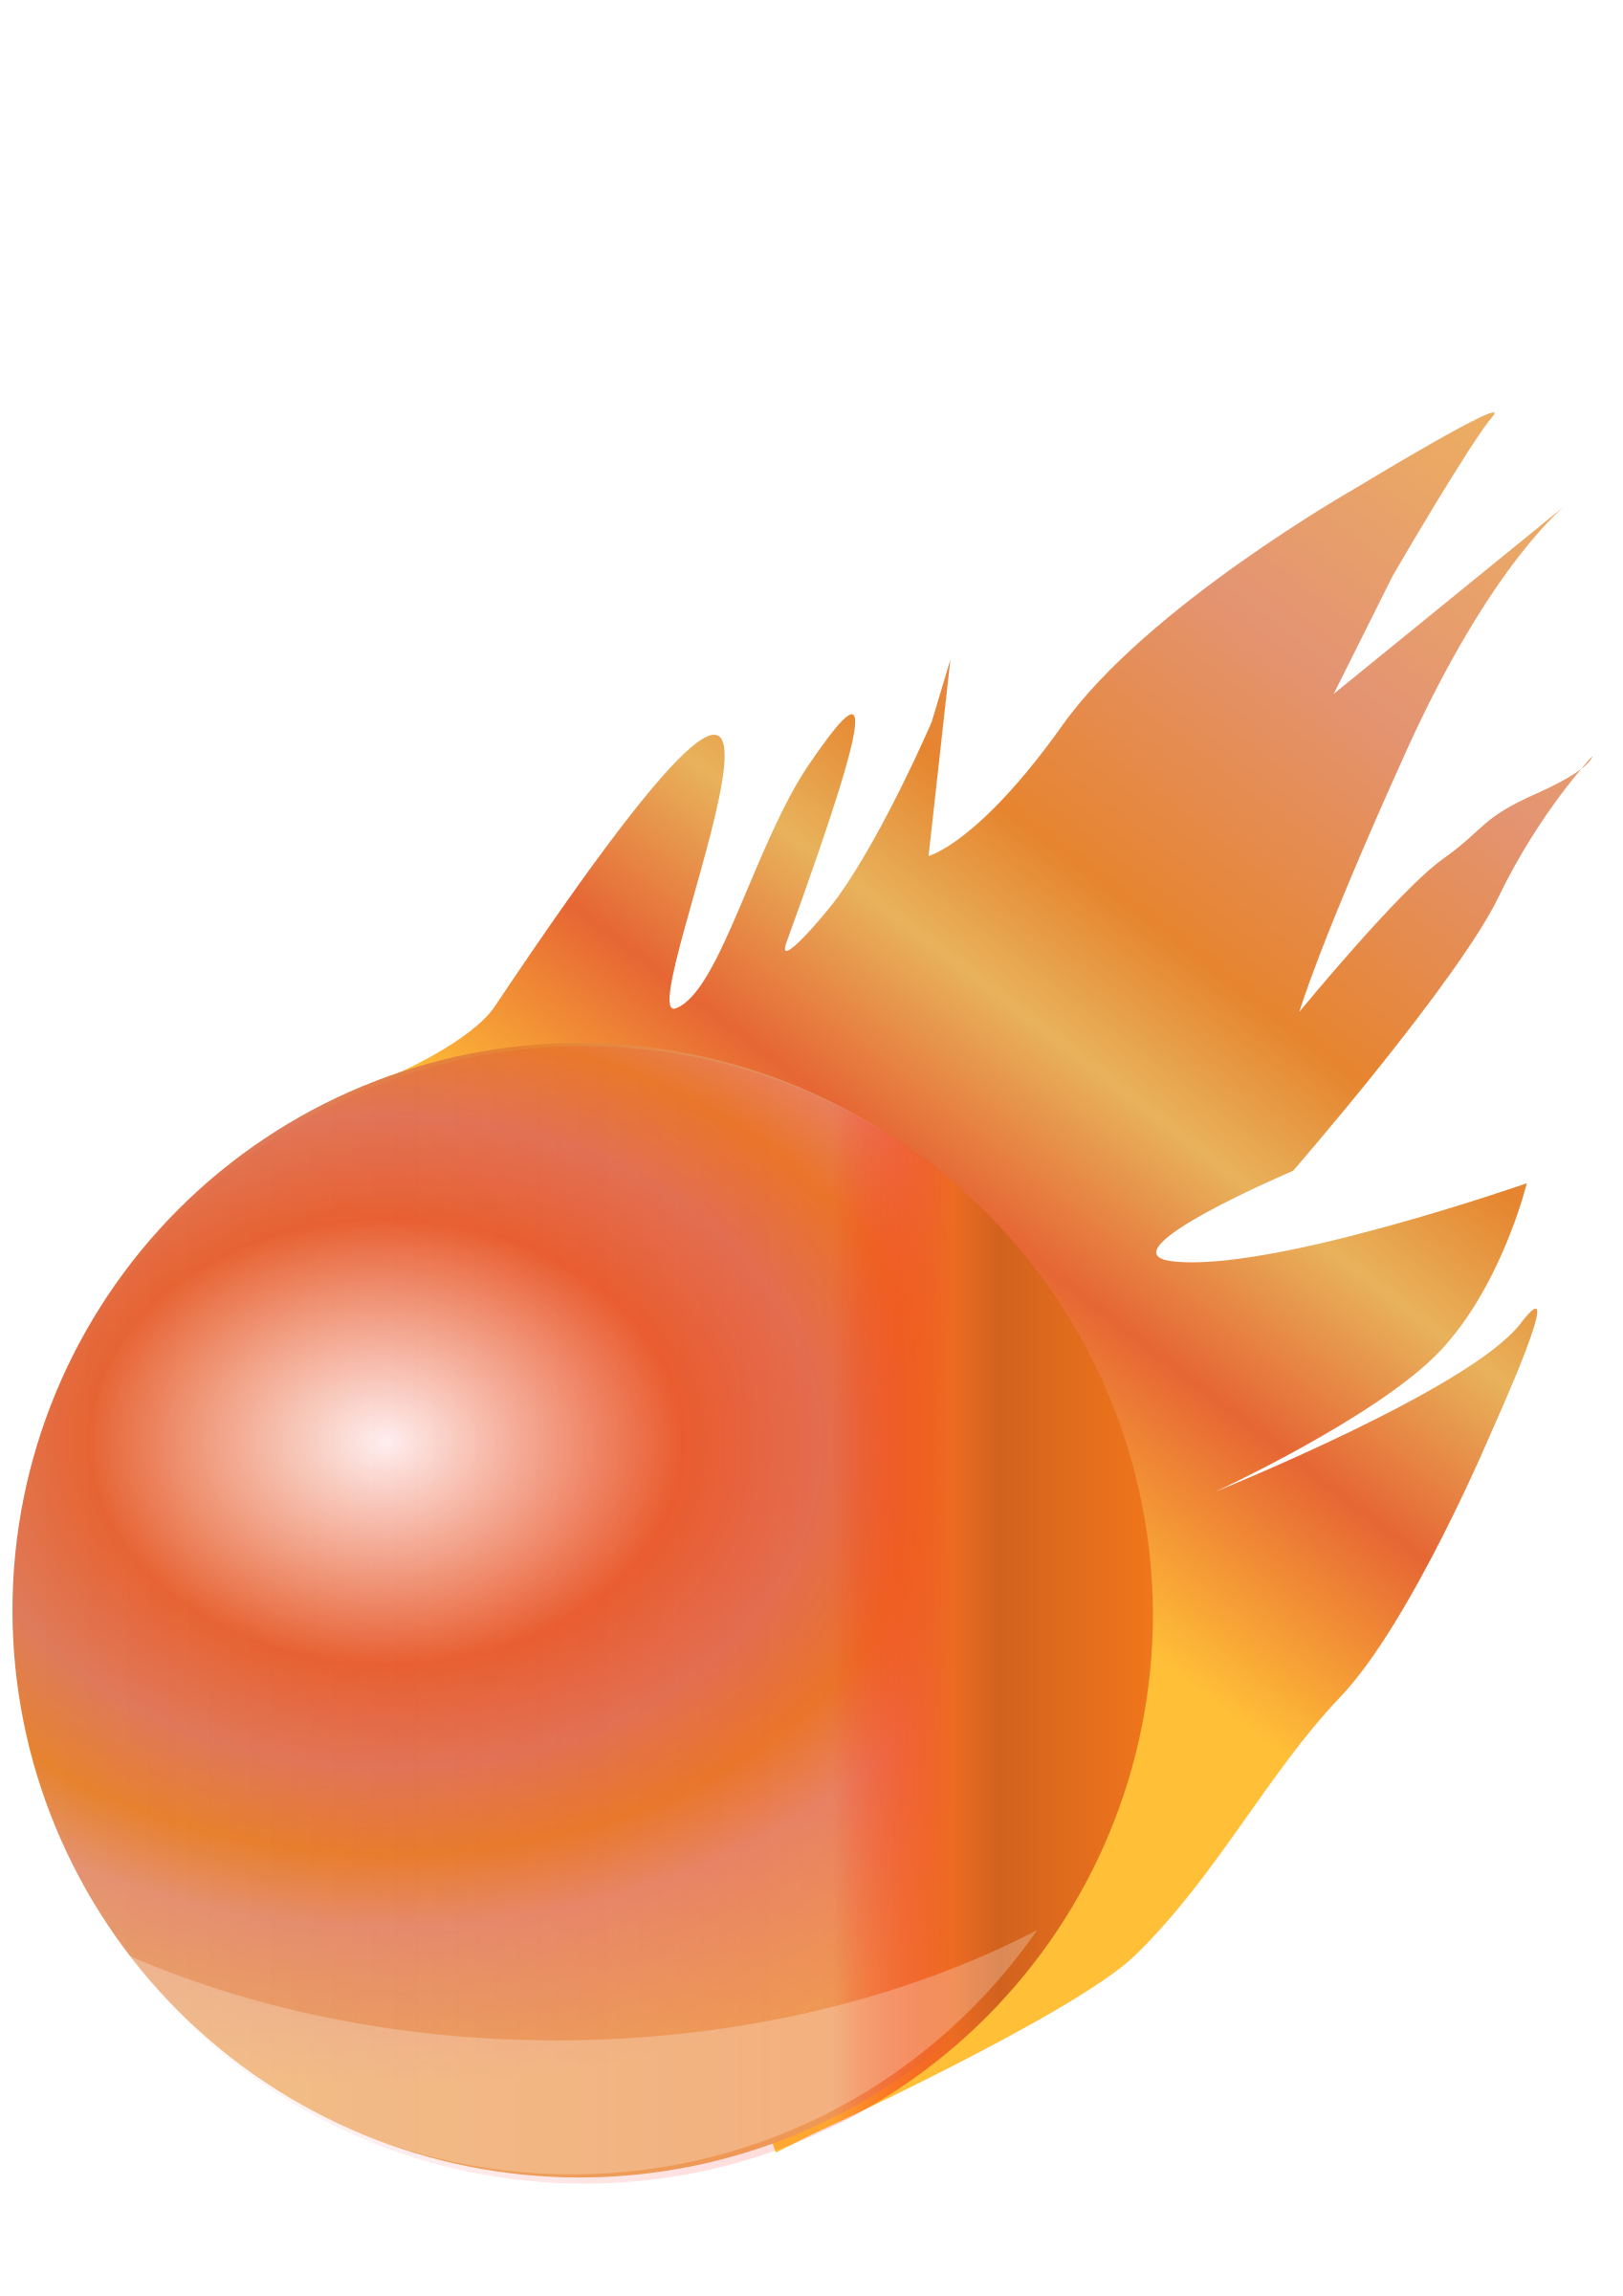 Fire ball. by Ehecatl1138